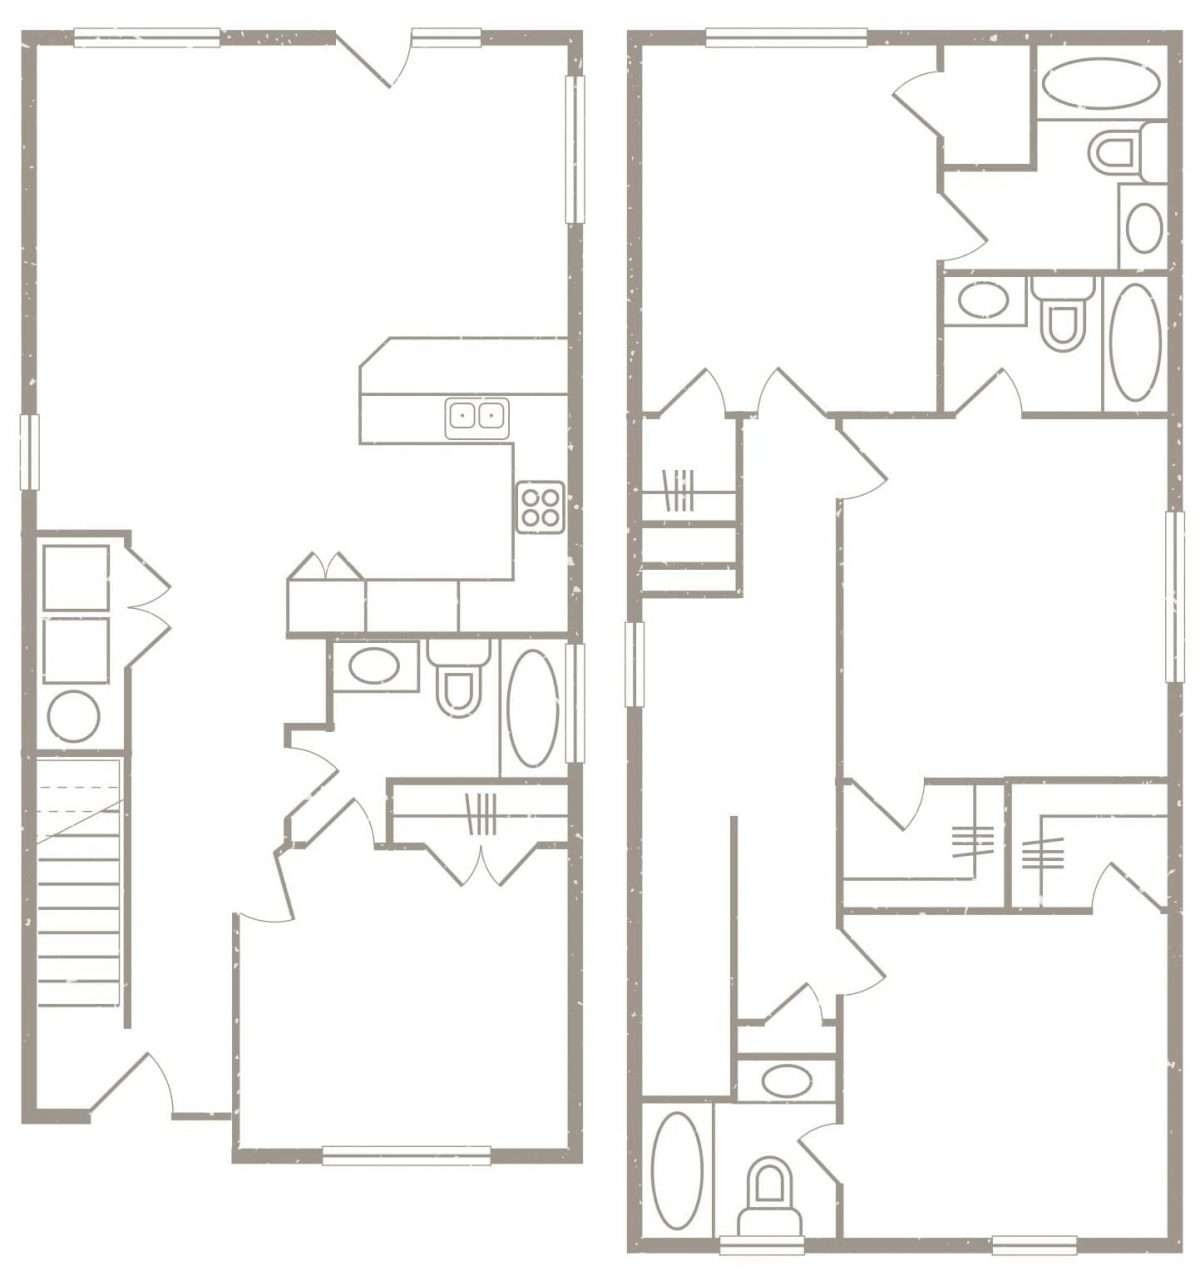 4 Bedroom Floorplan 3